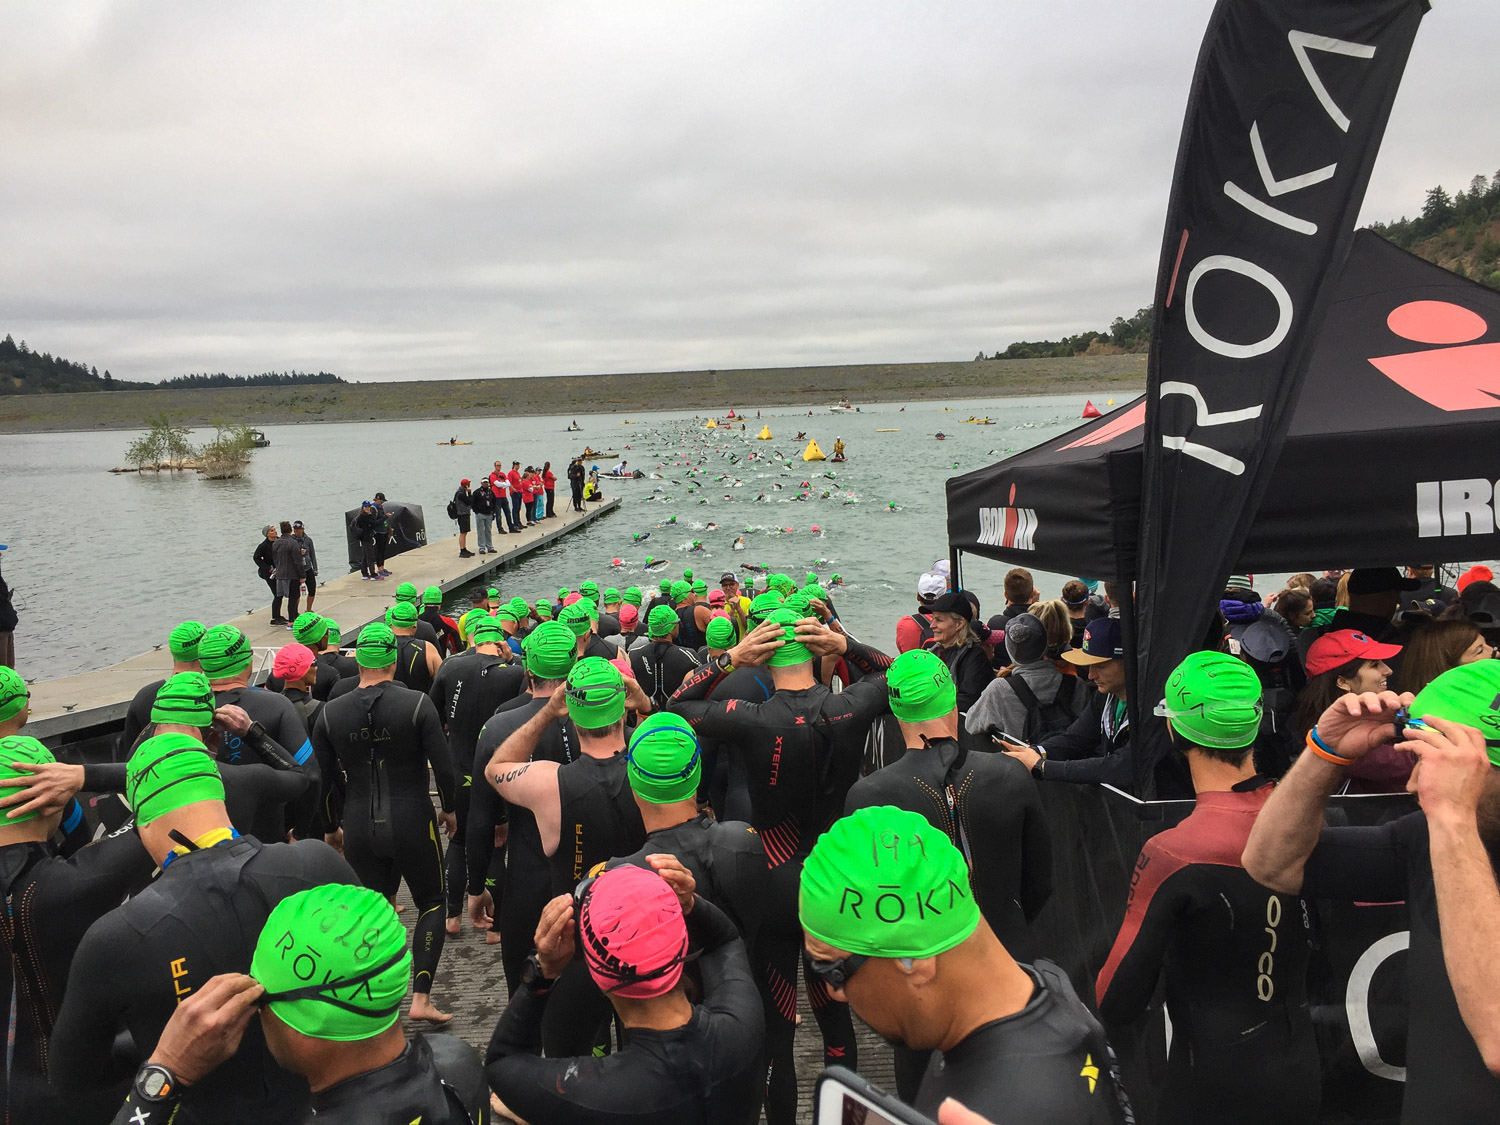 Ironman-swimmers in the water-2019